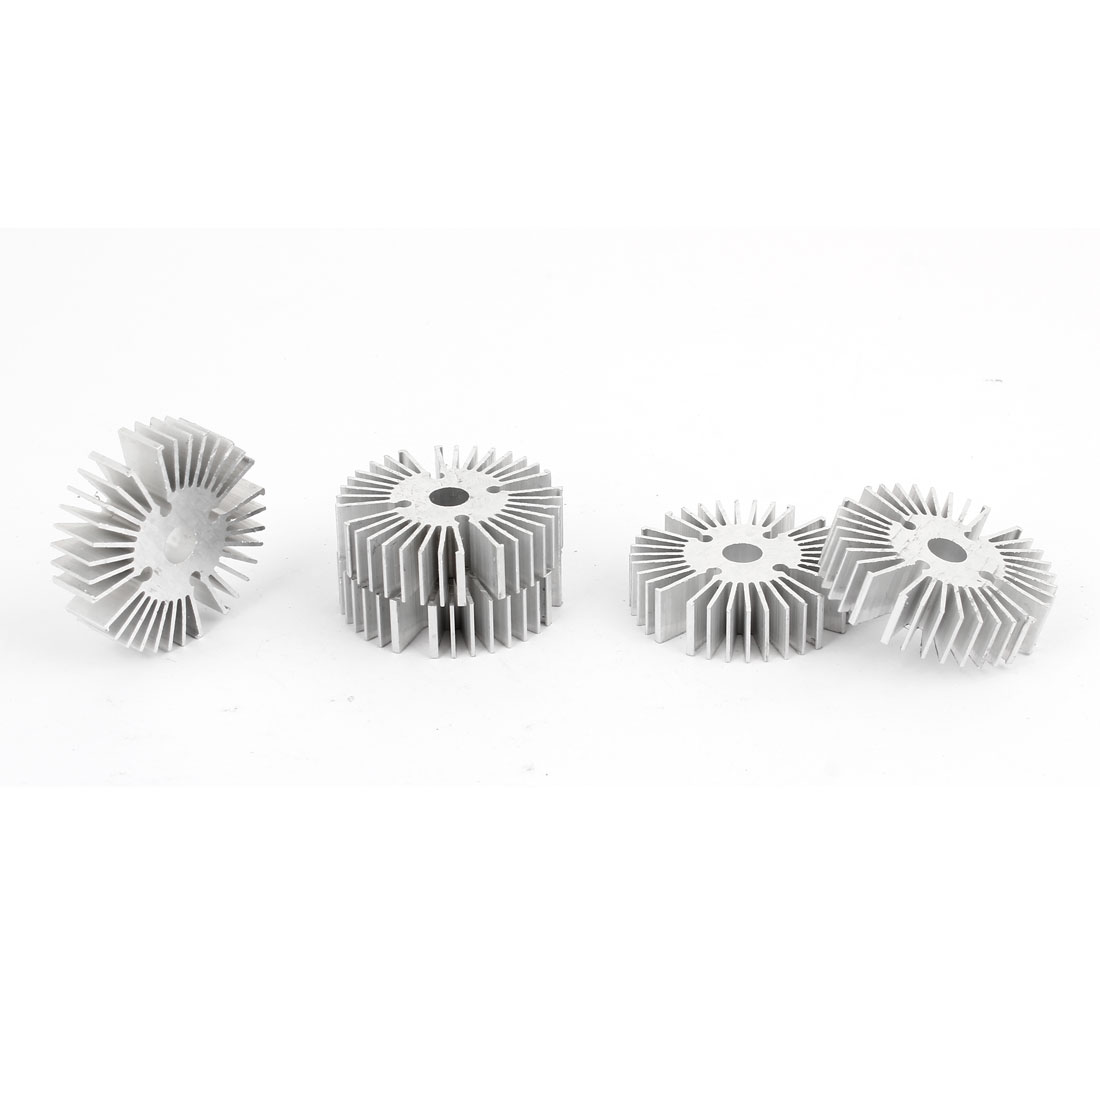 5 Pcs Round Shaped 39mm OD 6.5mm ID 10mm Height LED Lamp Heat Sinks Cooling Fin